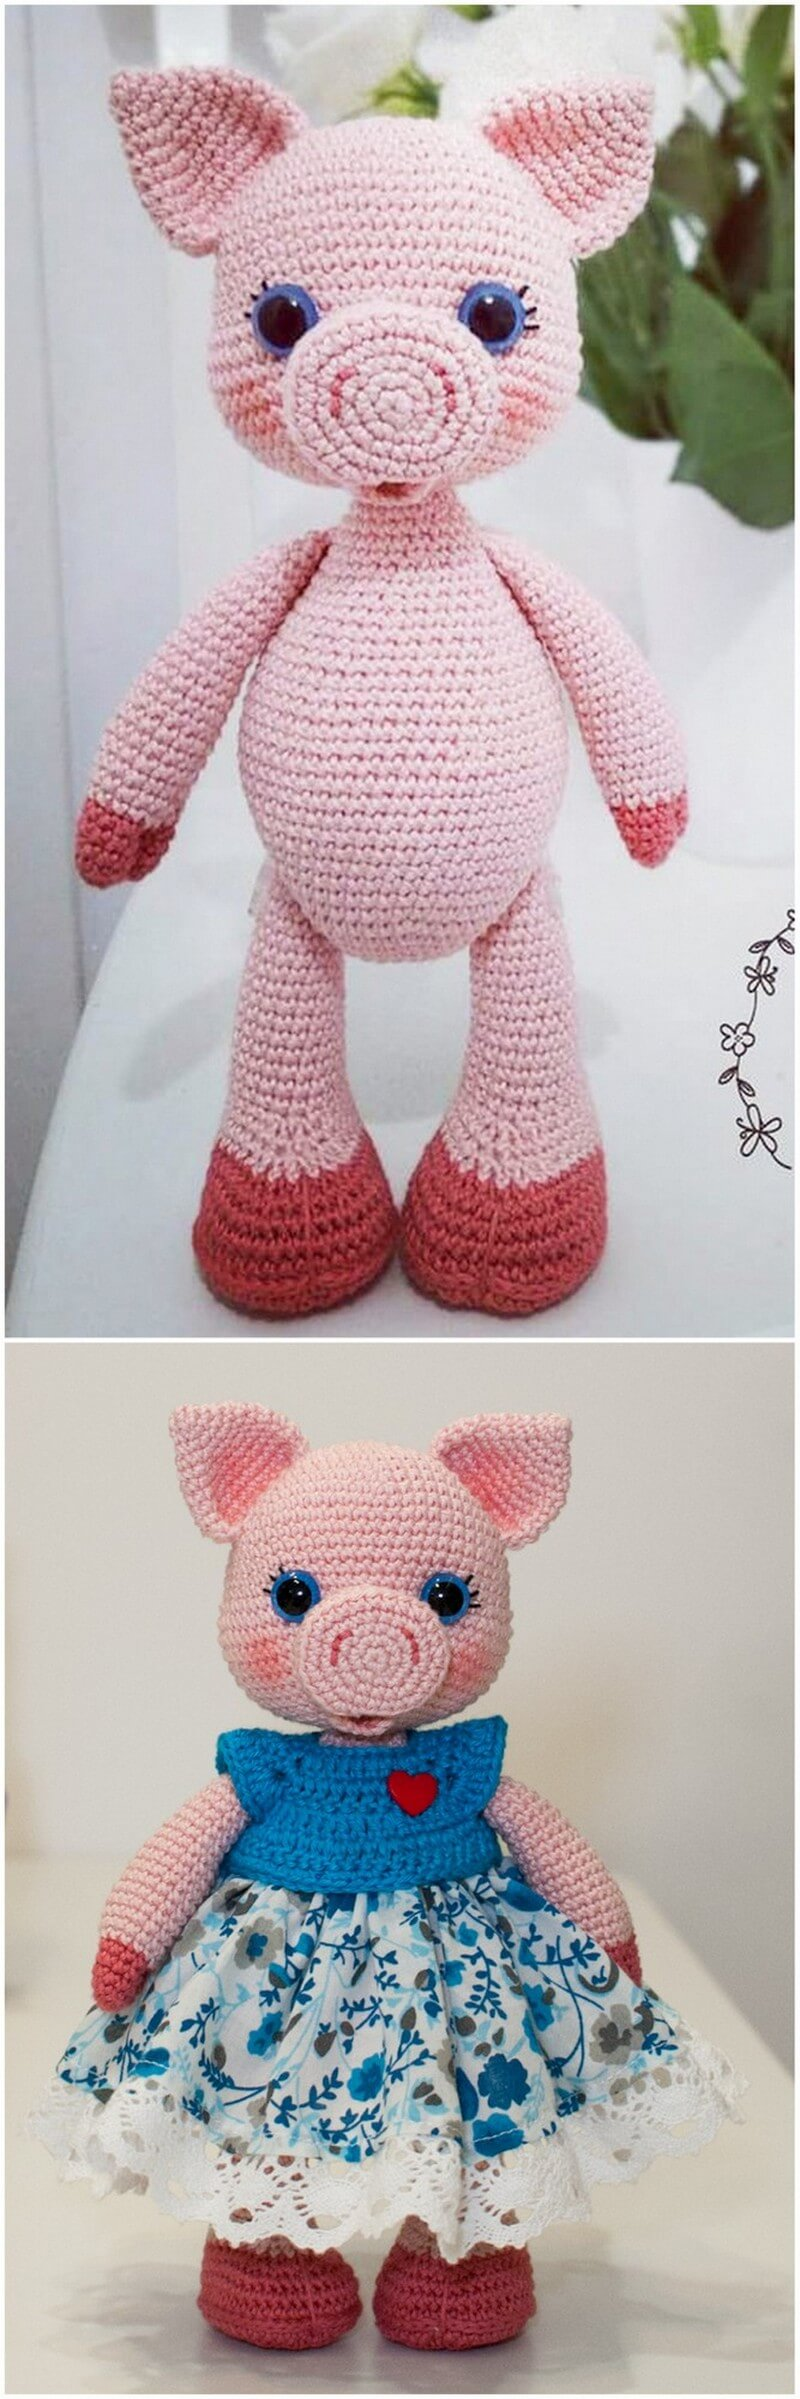 Crochet Amigurumi Doll Pattern (8)